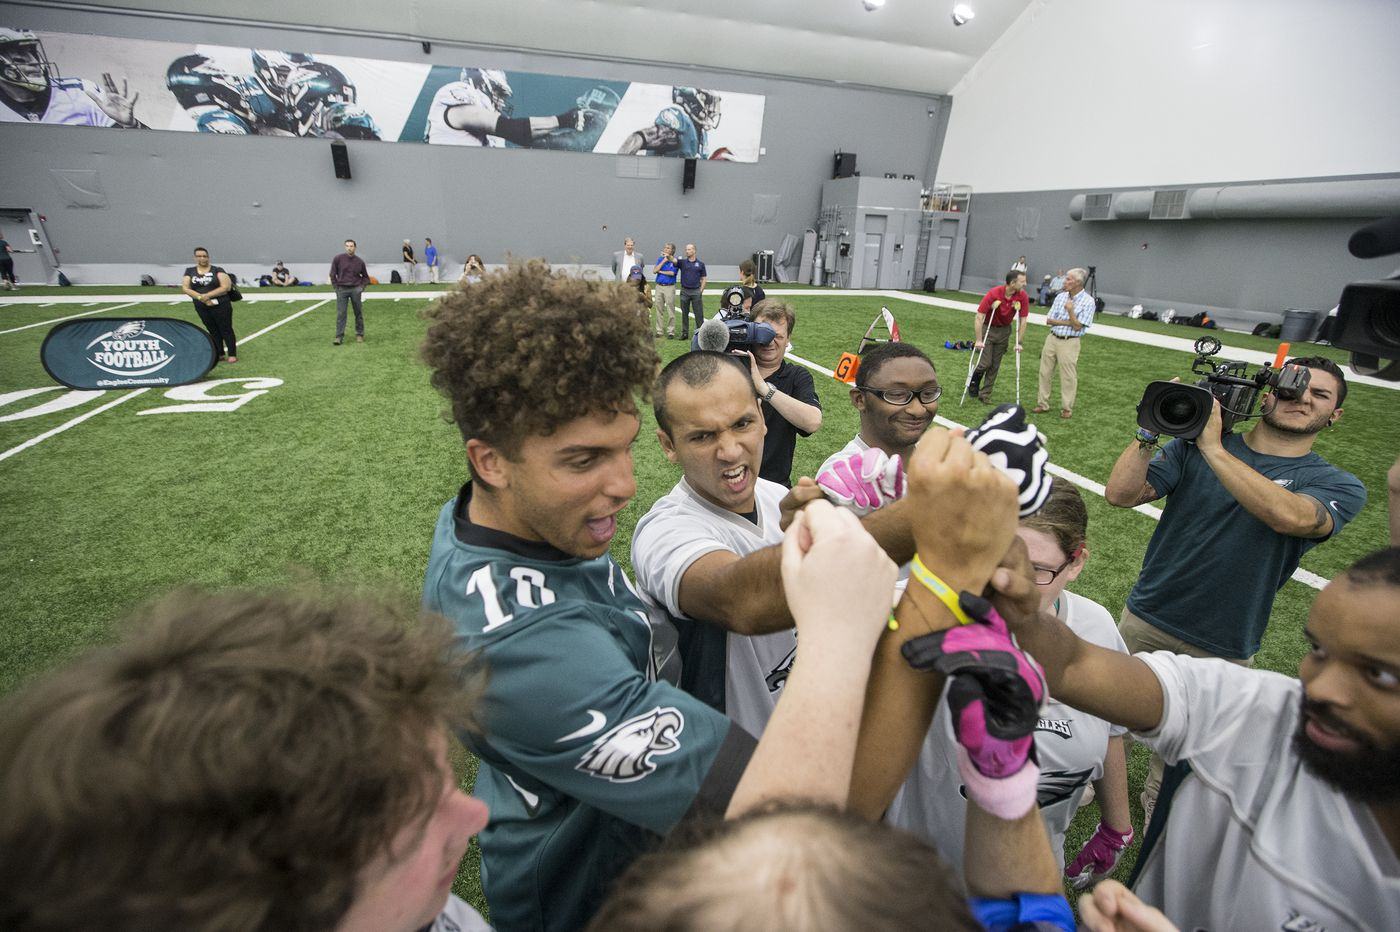 Eagles' Shelton Gibson inspired by 'just seeing the passion' of Special Olympics flag football players